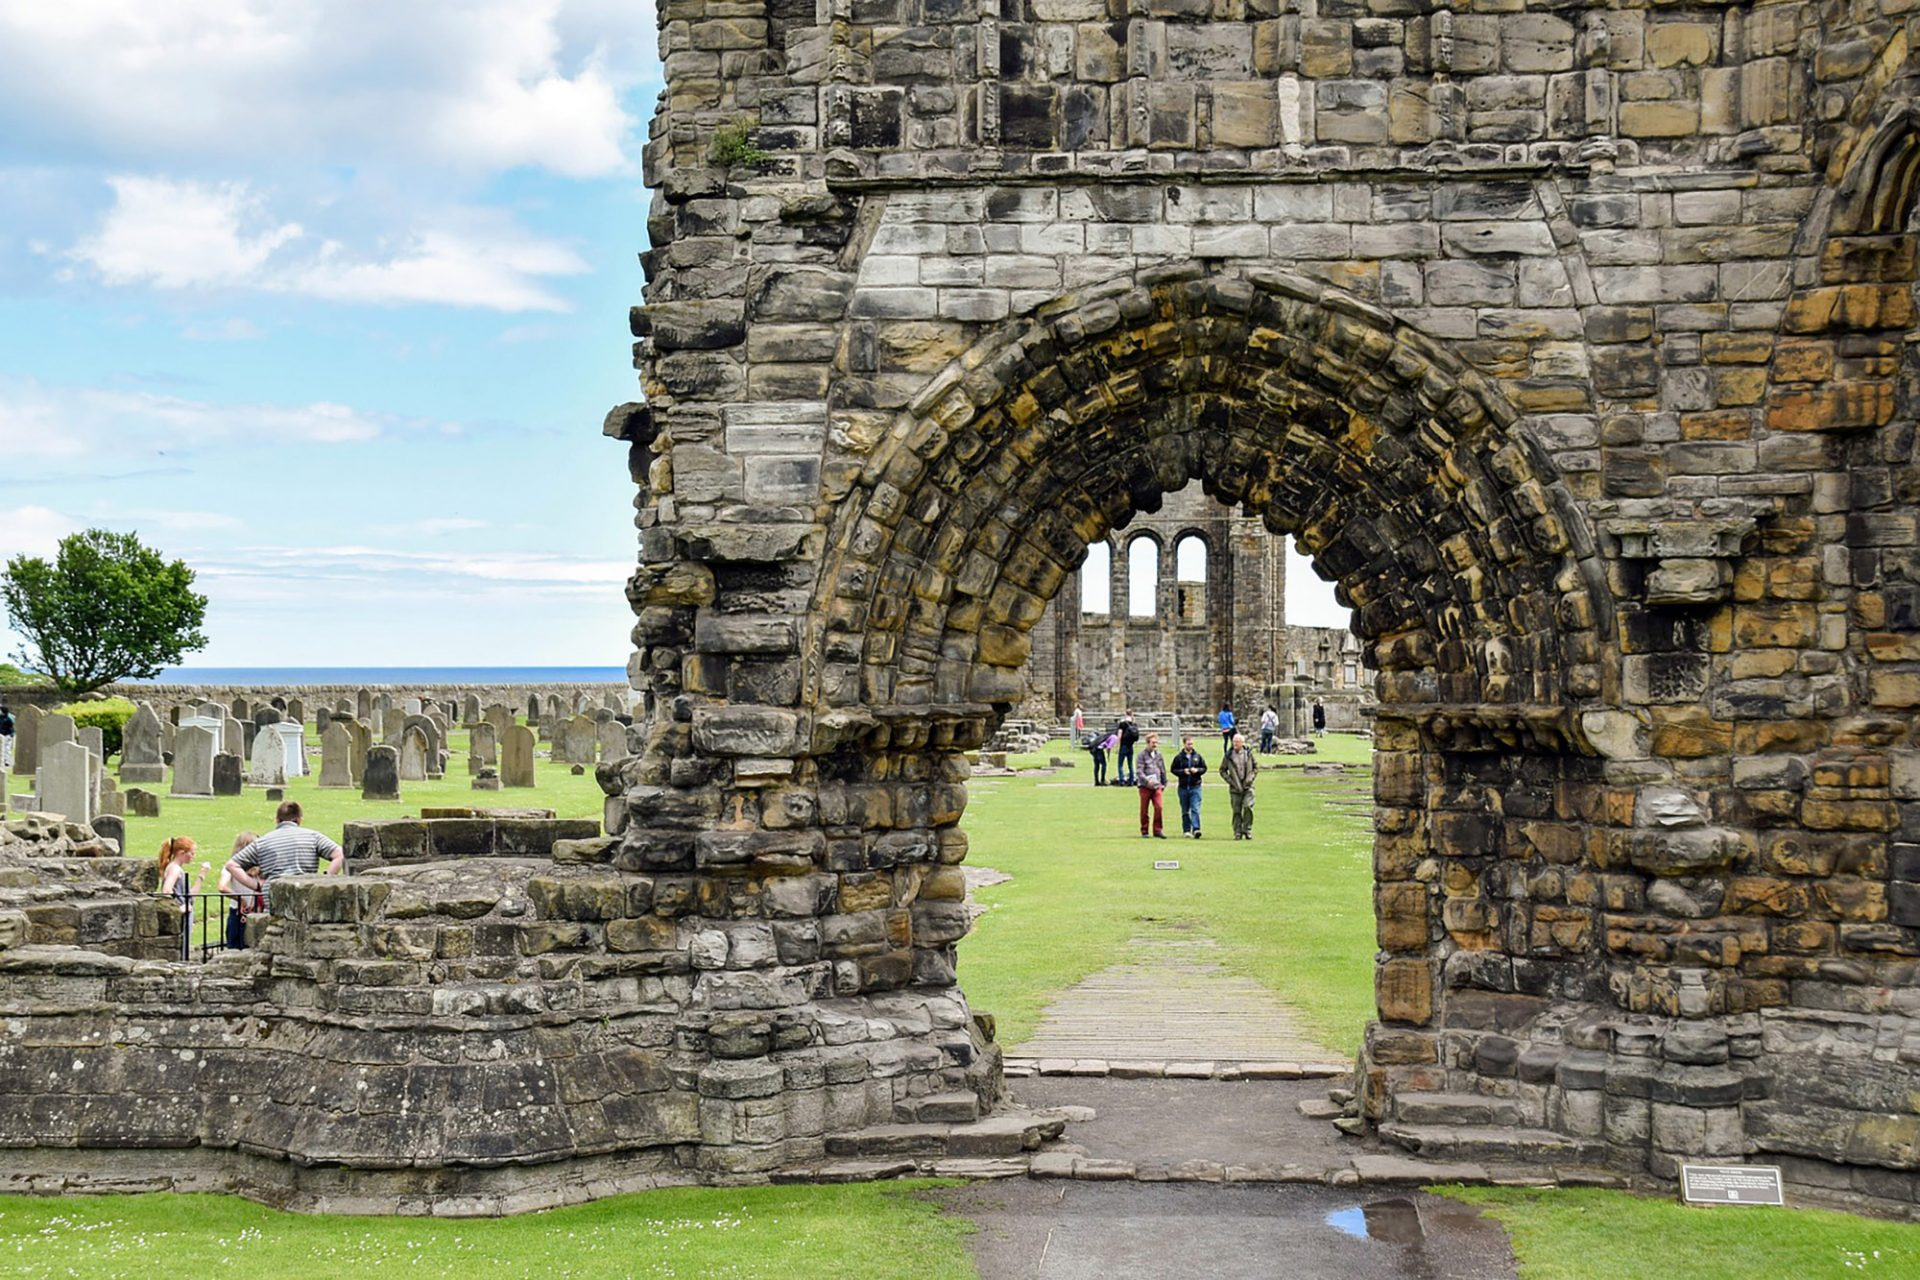 St Andrews is a seaside town with Royal ties featured in our royal and ancient tour of Scotland